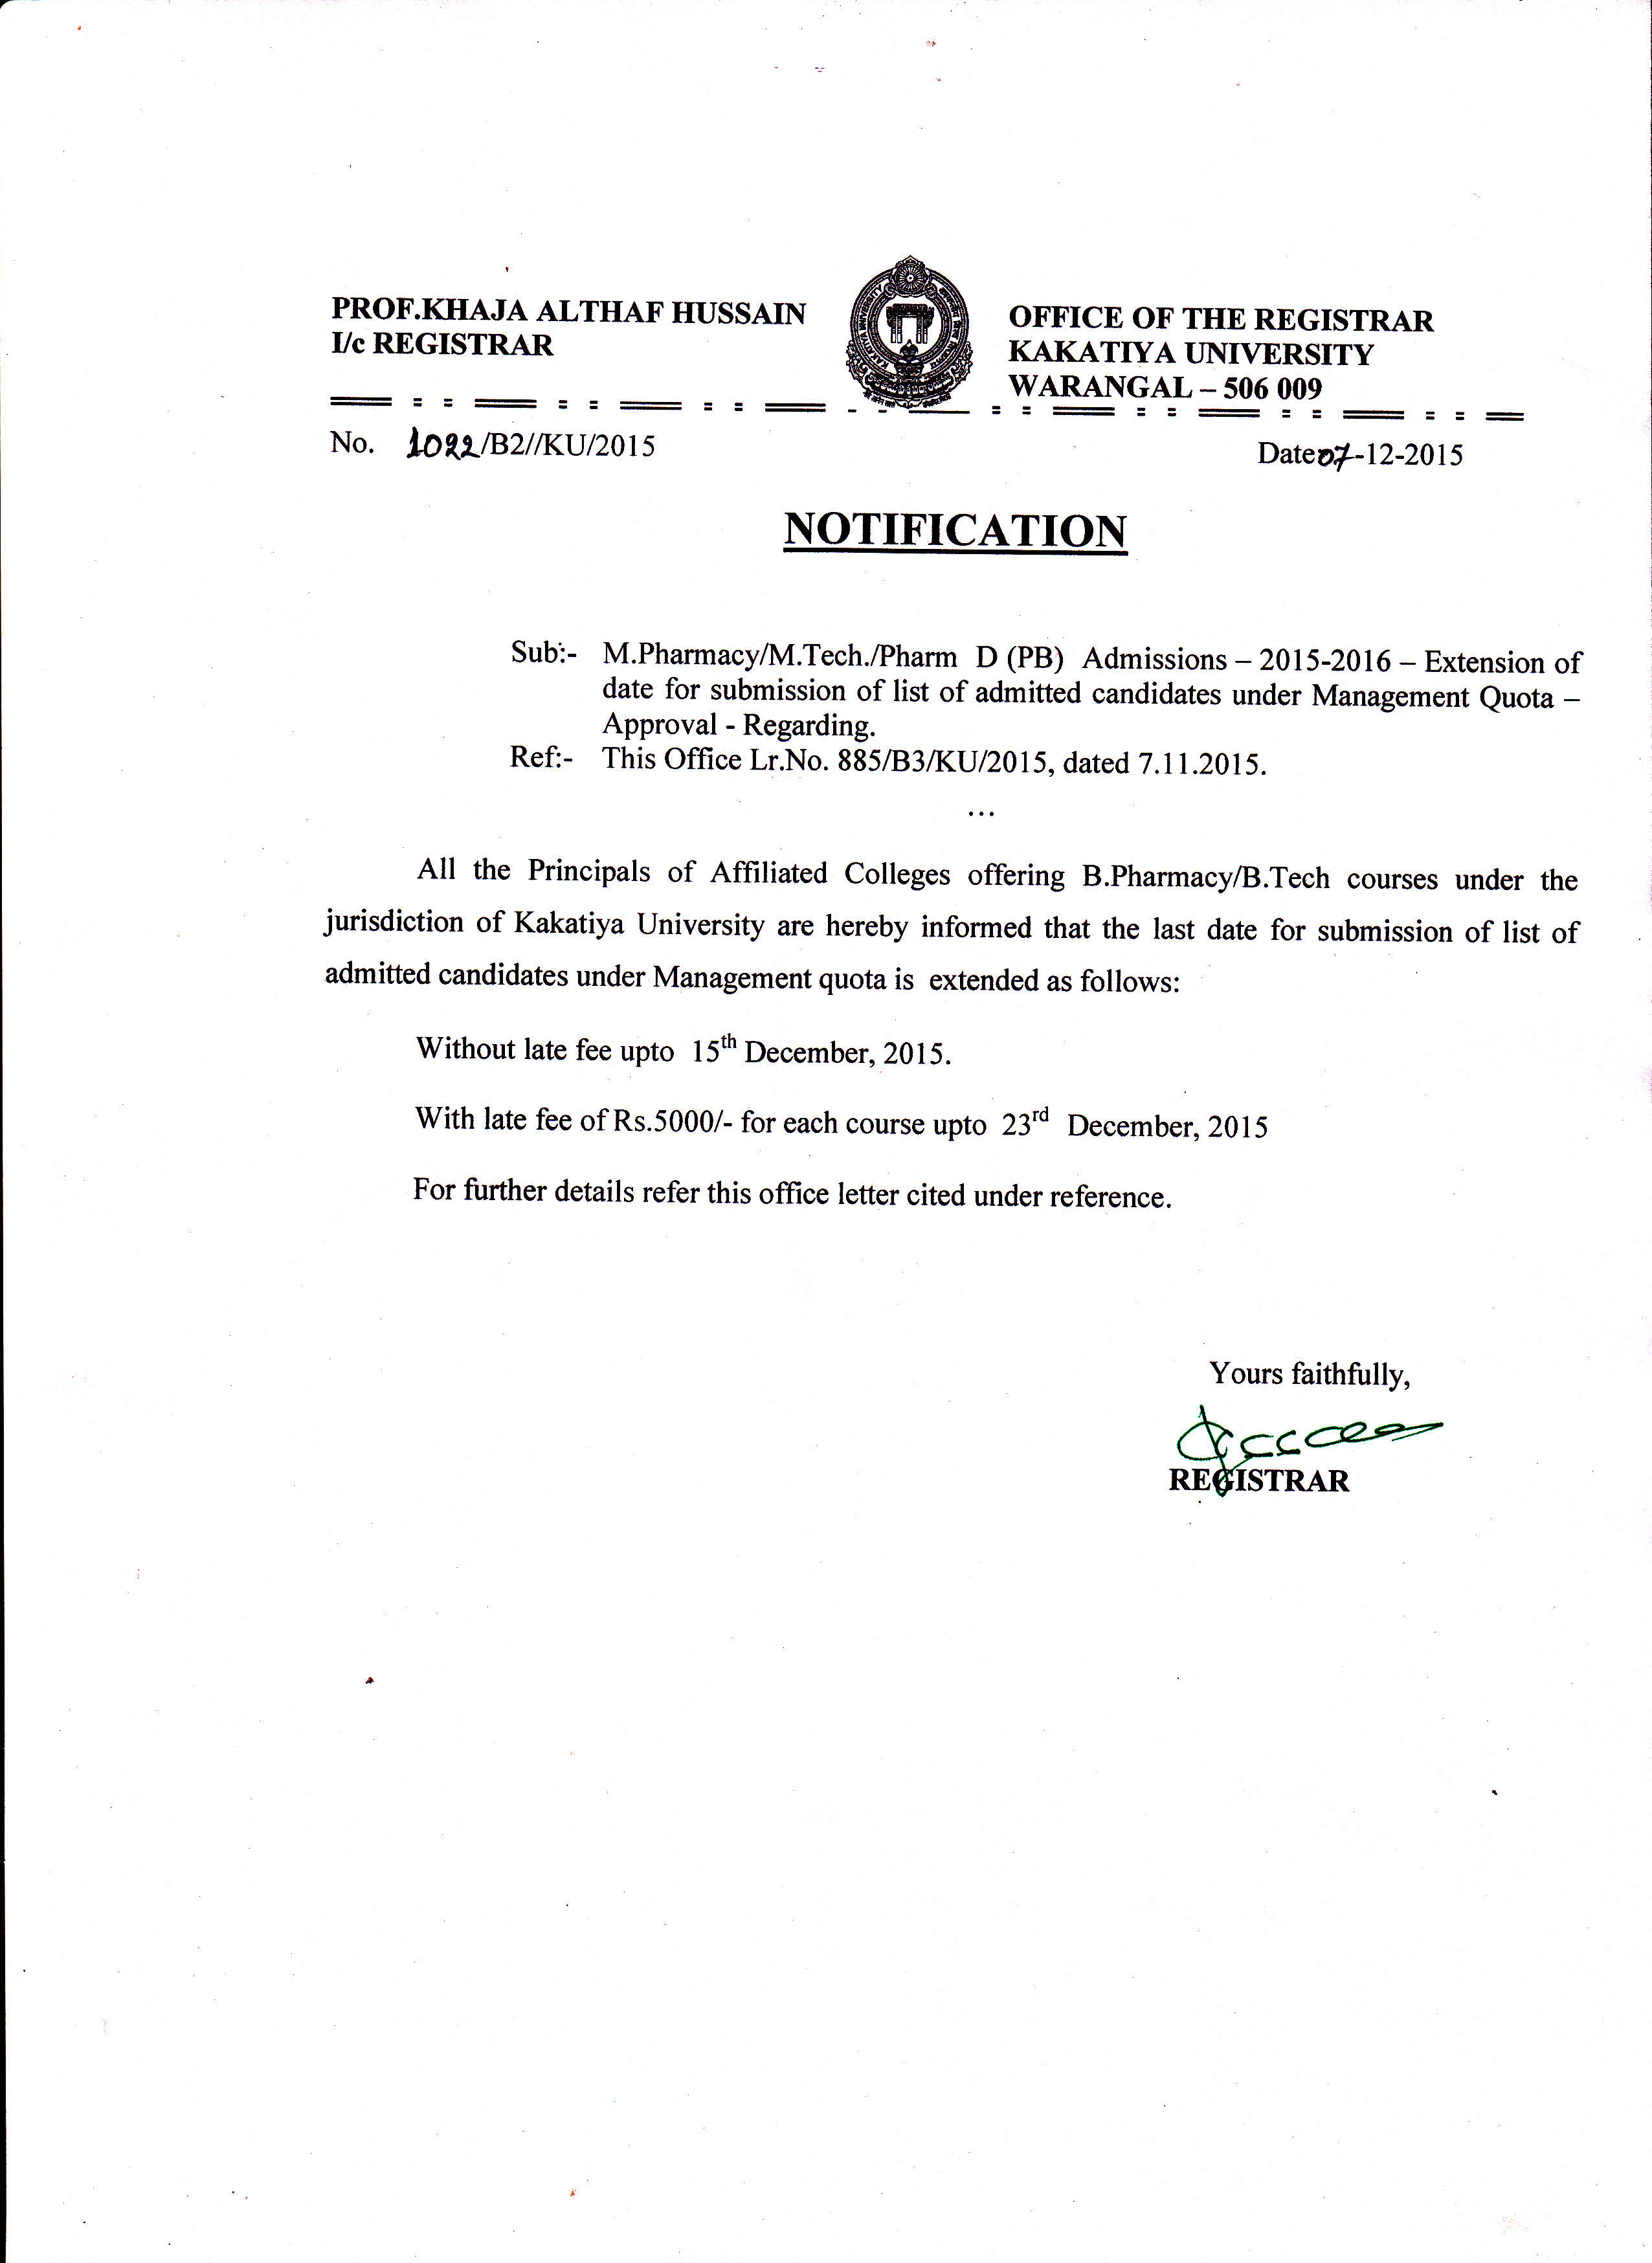 Kakatiya university warangal 506009 telangana india marmacymtechpharm d pb admissions 2015 16 extension of date for submission of list of admitted candidates under management quota thecheapjerseys Images